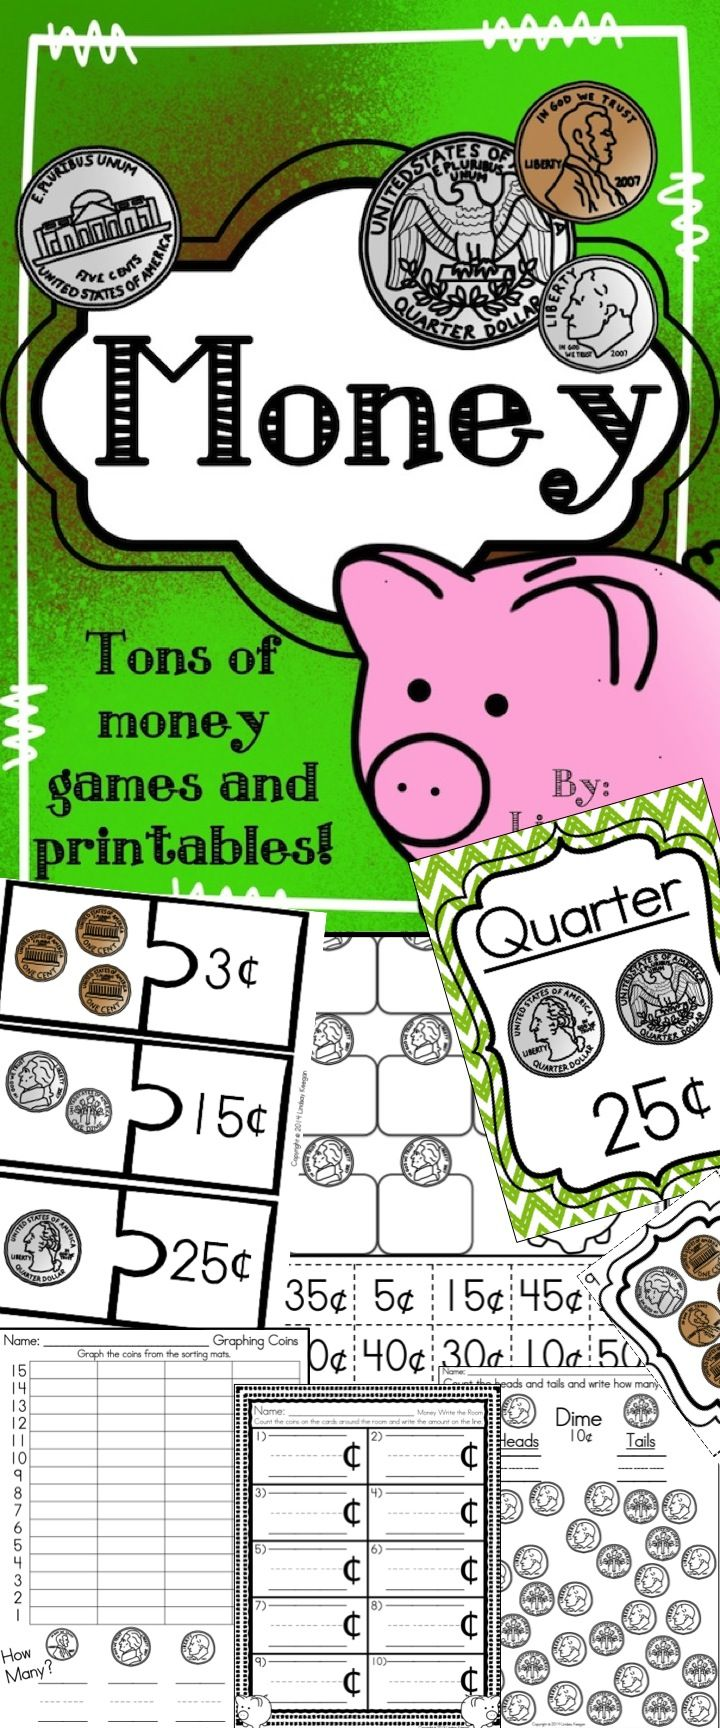 Worksheets Money Games For Preschool money games and printables gaming maths school printables